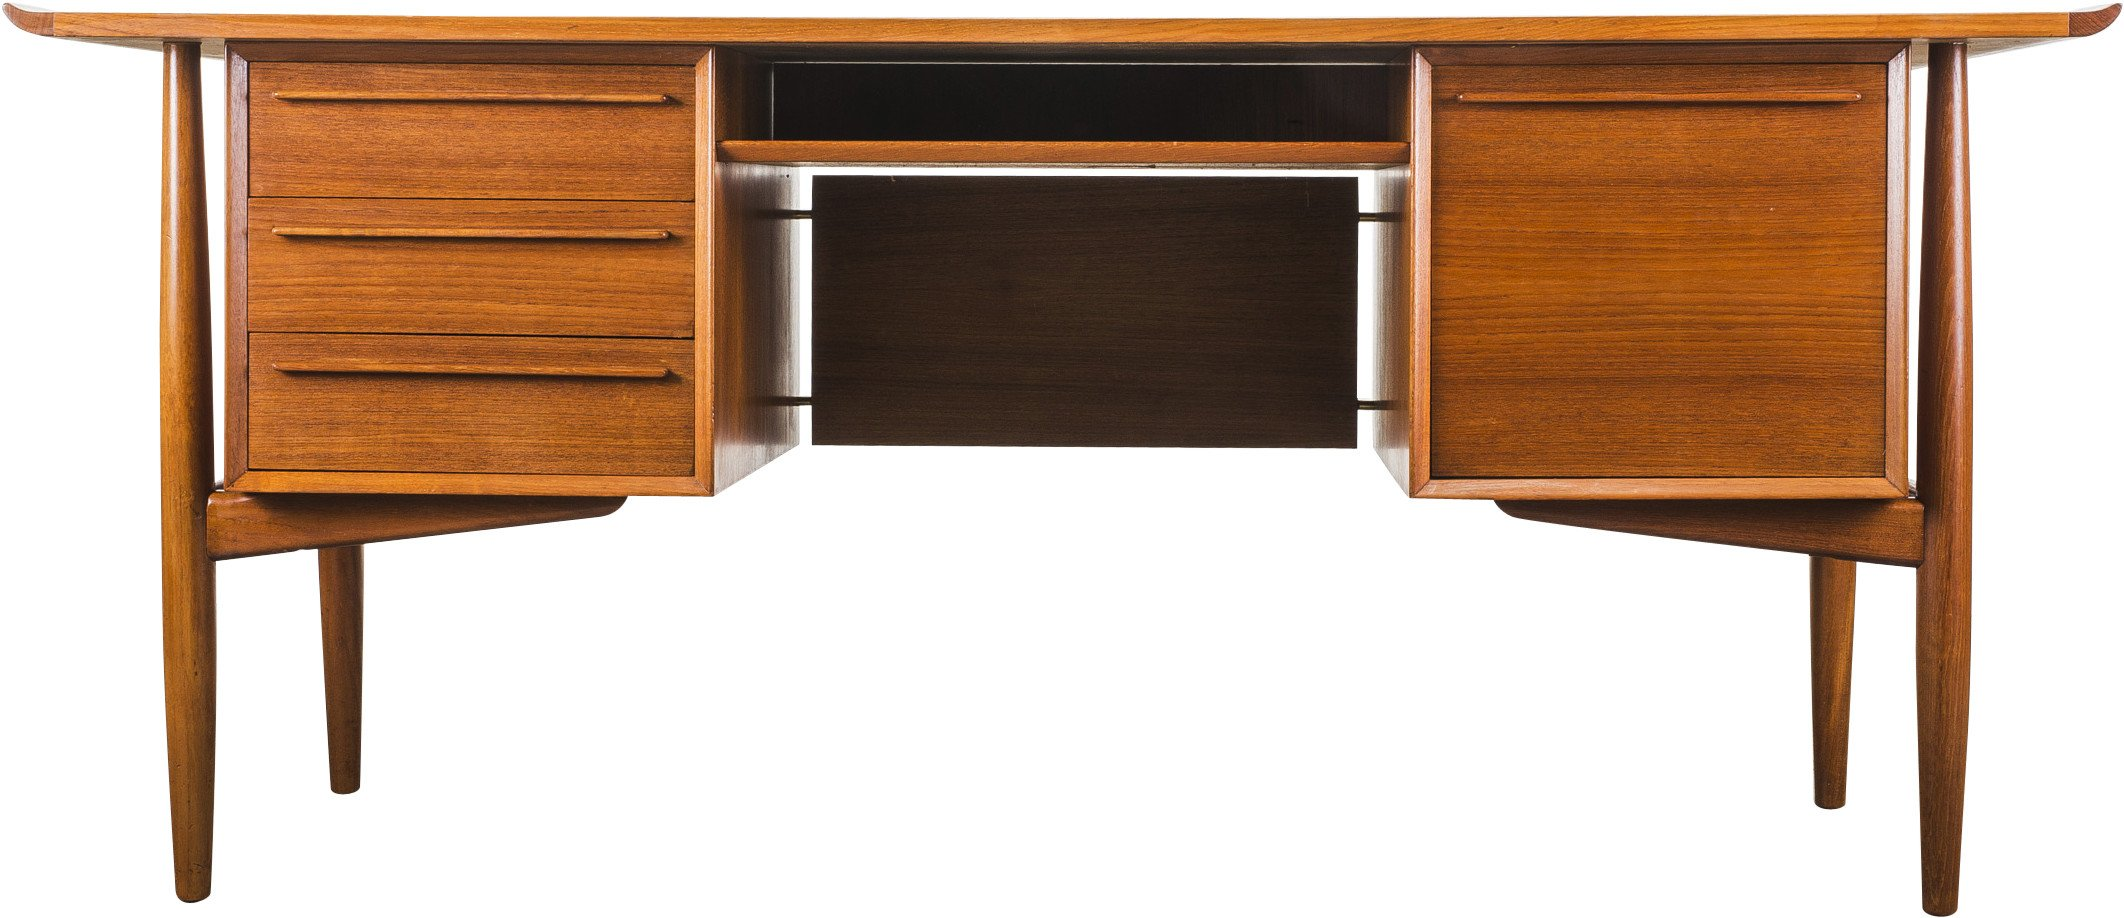 Desk by A. Vodder for H.P. Hansen, Denmark, 1960s